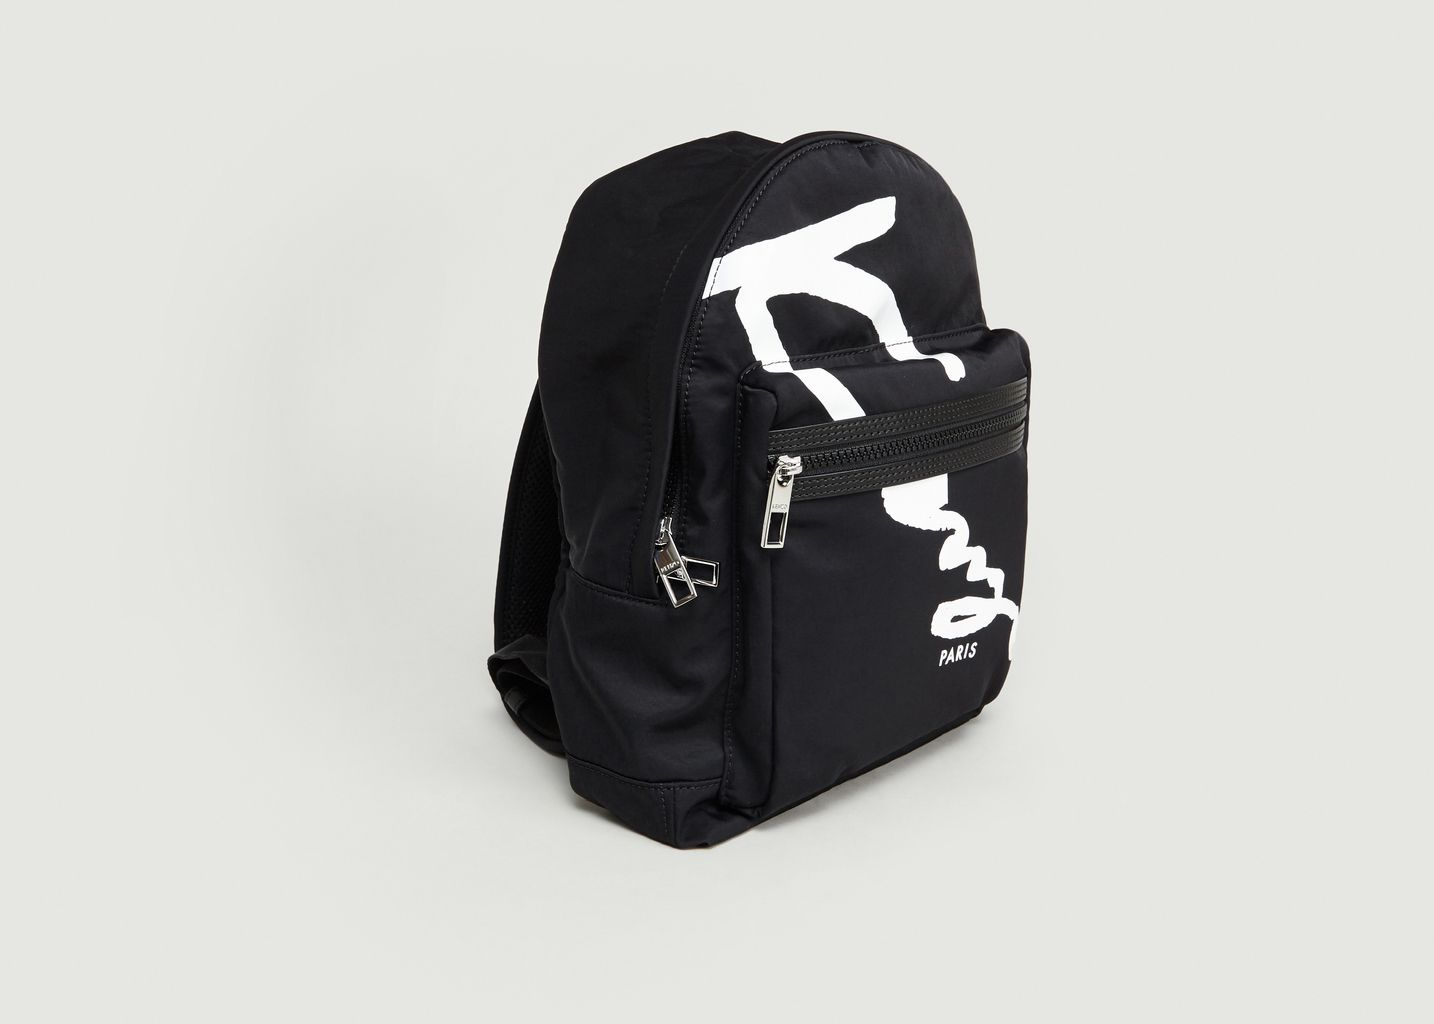 Signature Kenzo Backpack Black Lexception Bacpack